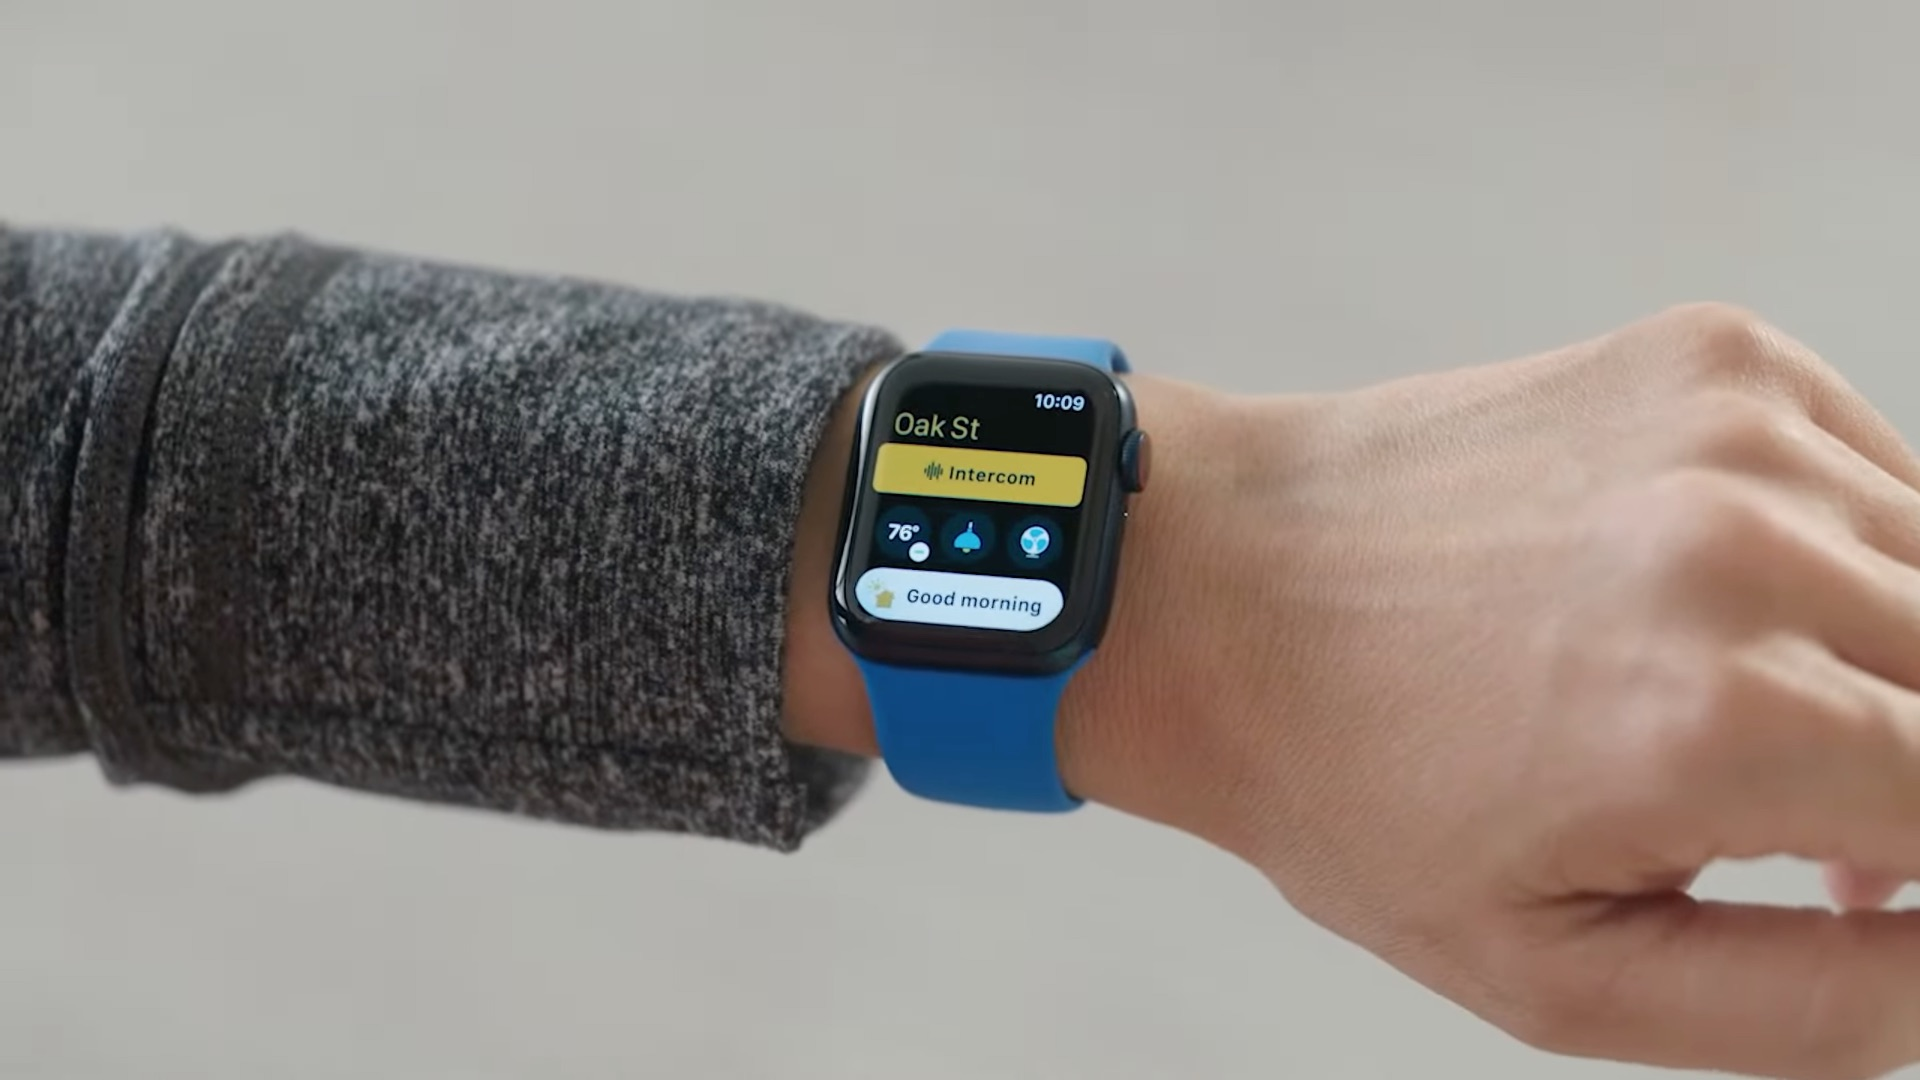 A photo showing a wrist wearing an Apple Watch running watchOS 8, with the Intercom button shown in the redesigned Home app